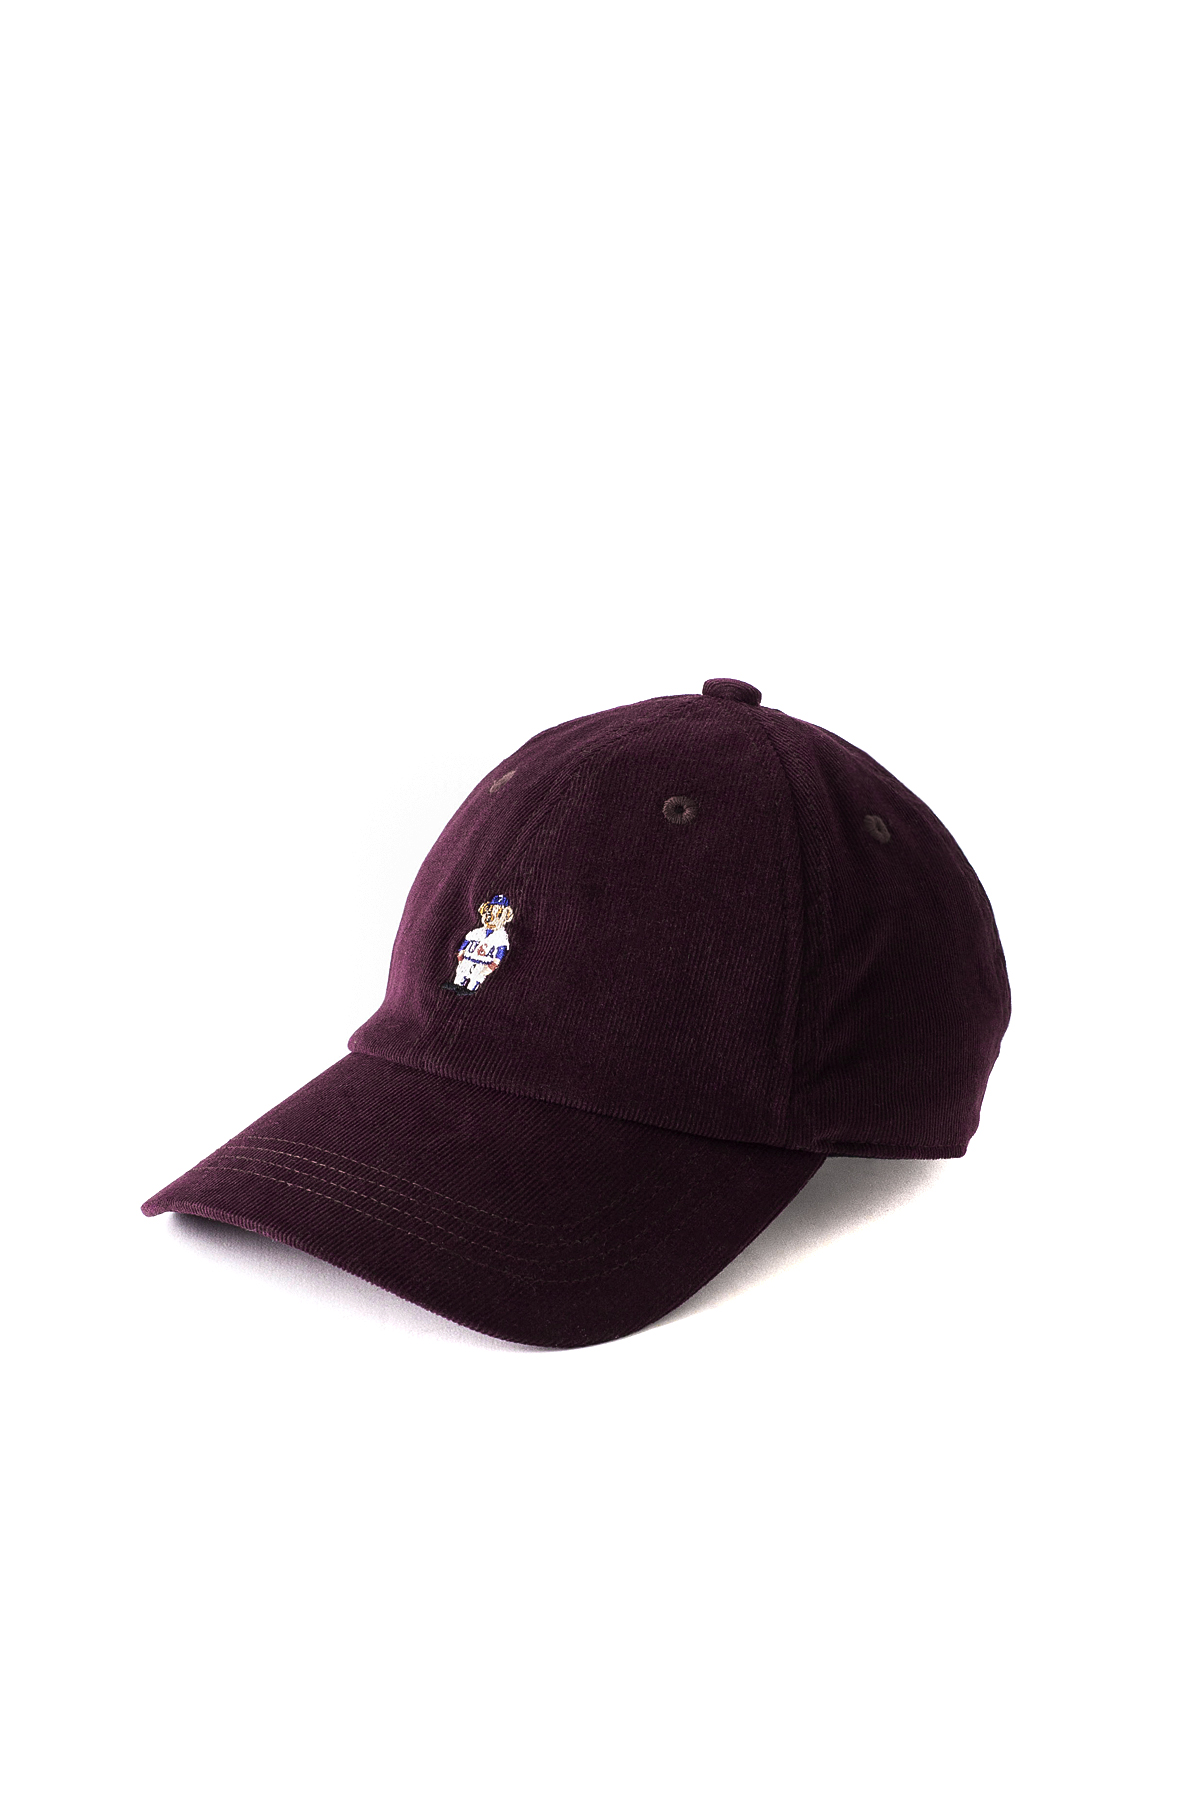 Infielder Design : Bear Cap (Wine)